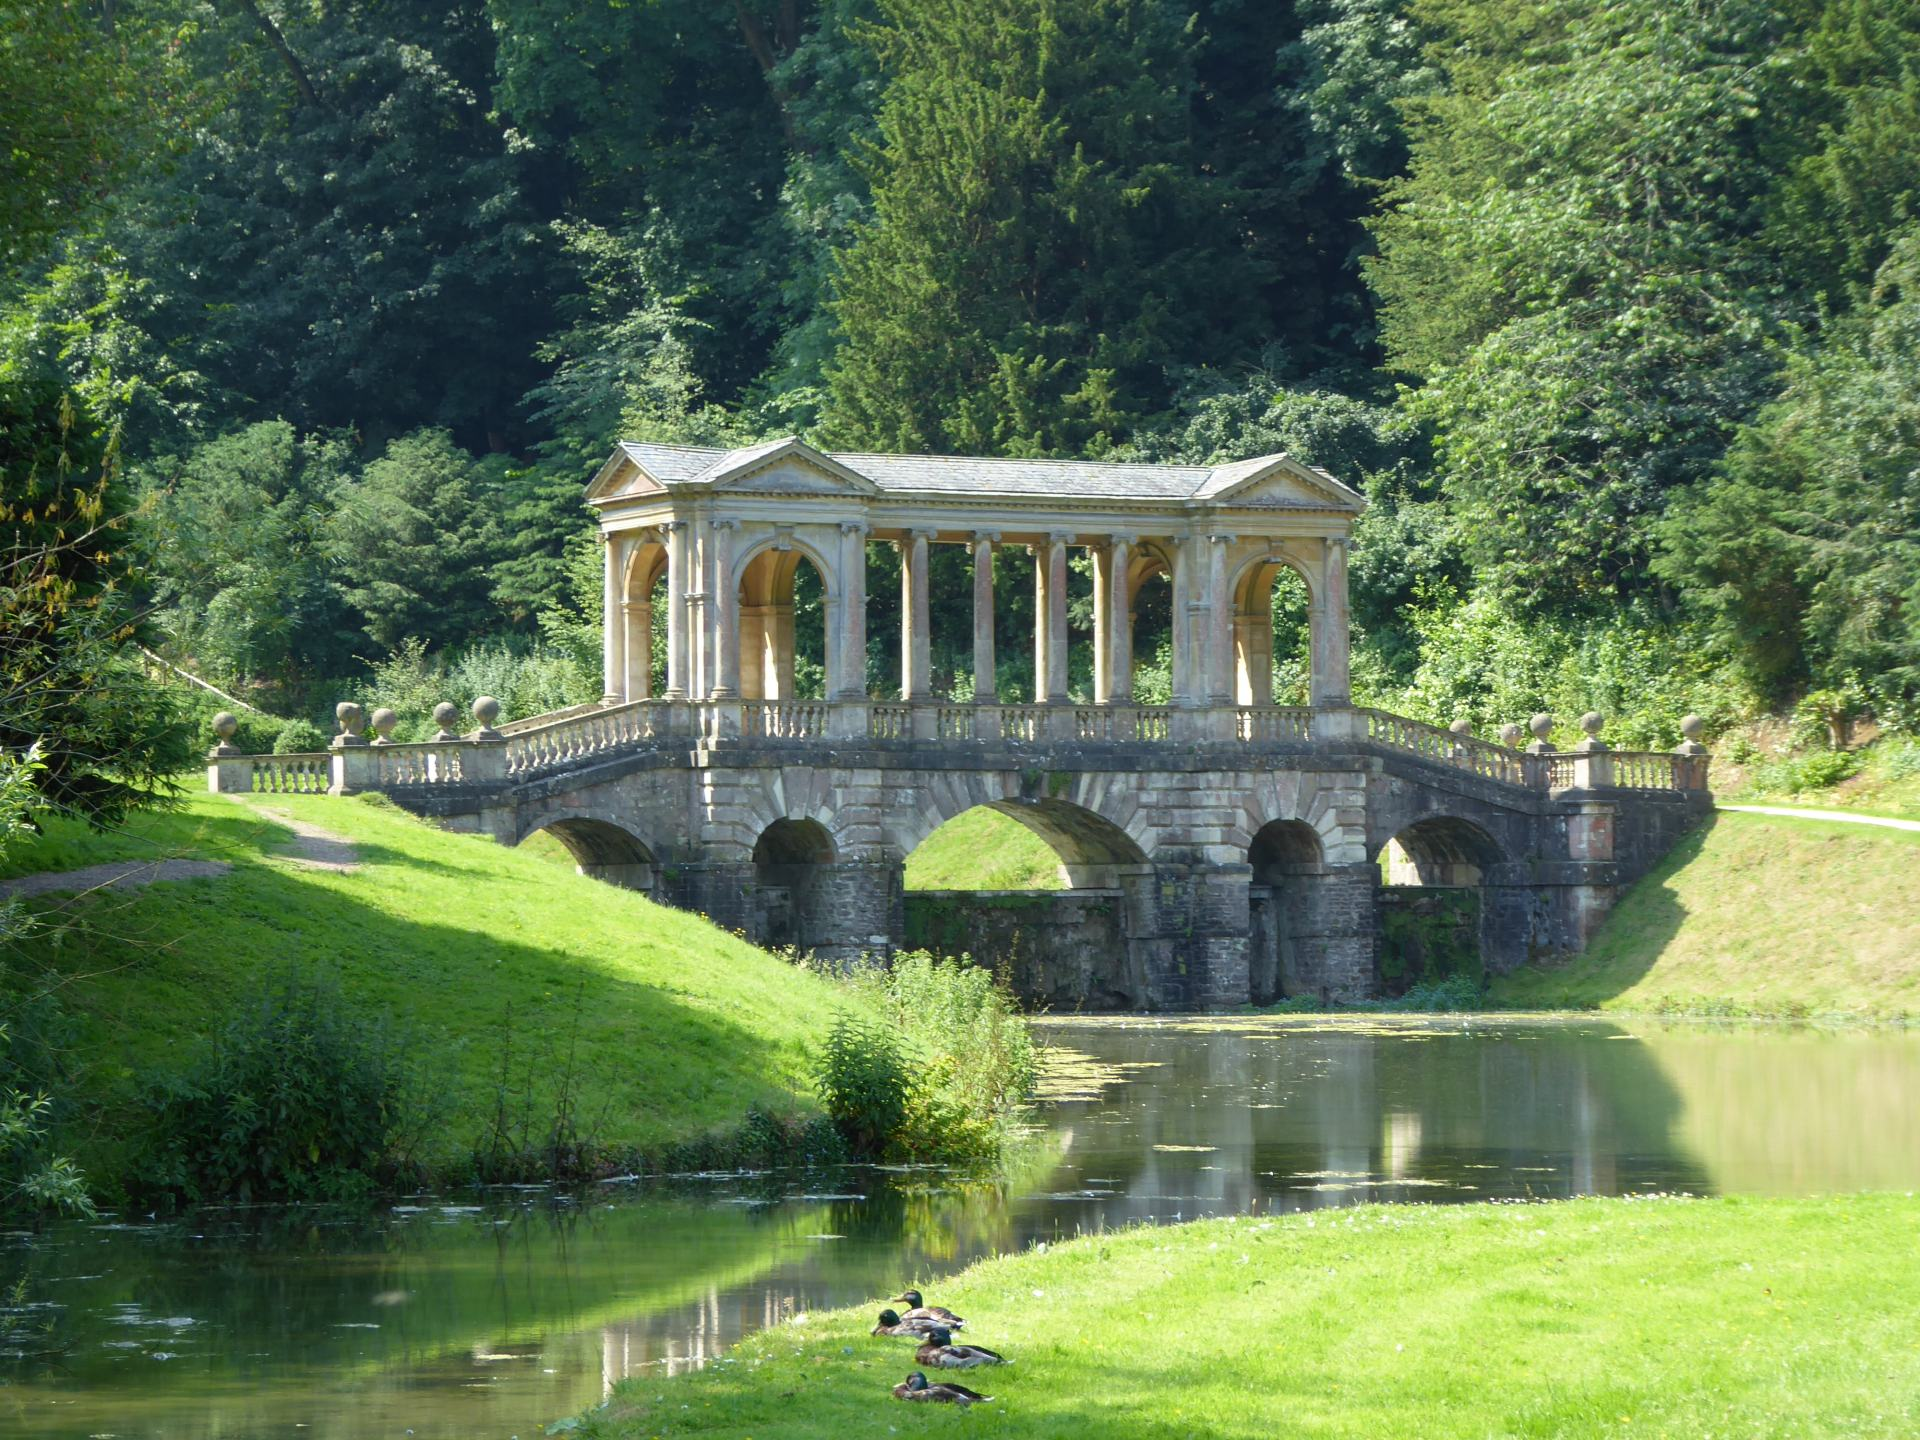 A bridge across water in Prior Park Landscape Garden, with tree's in the background. The bridge has several pillars holding up a roof. A few ducks sit on the grass in the foreground.